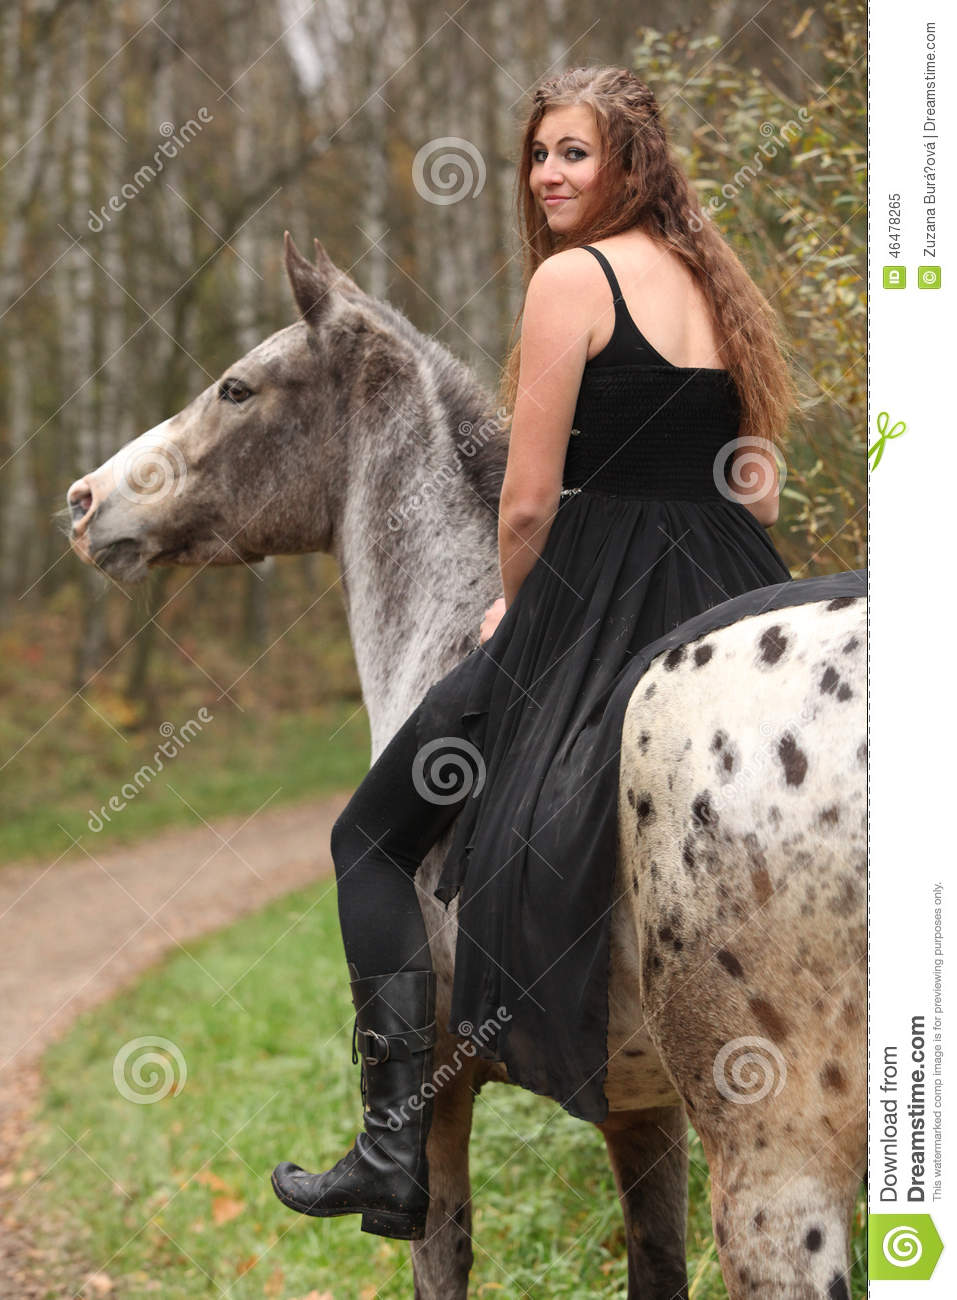 Amazing Girl With Long Hair Riding A Horse Stock Image